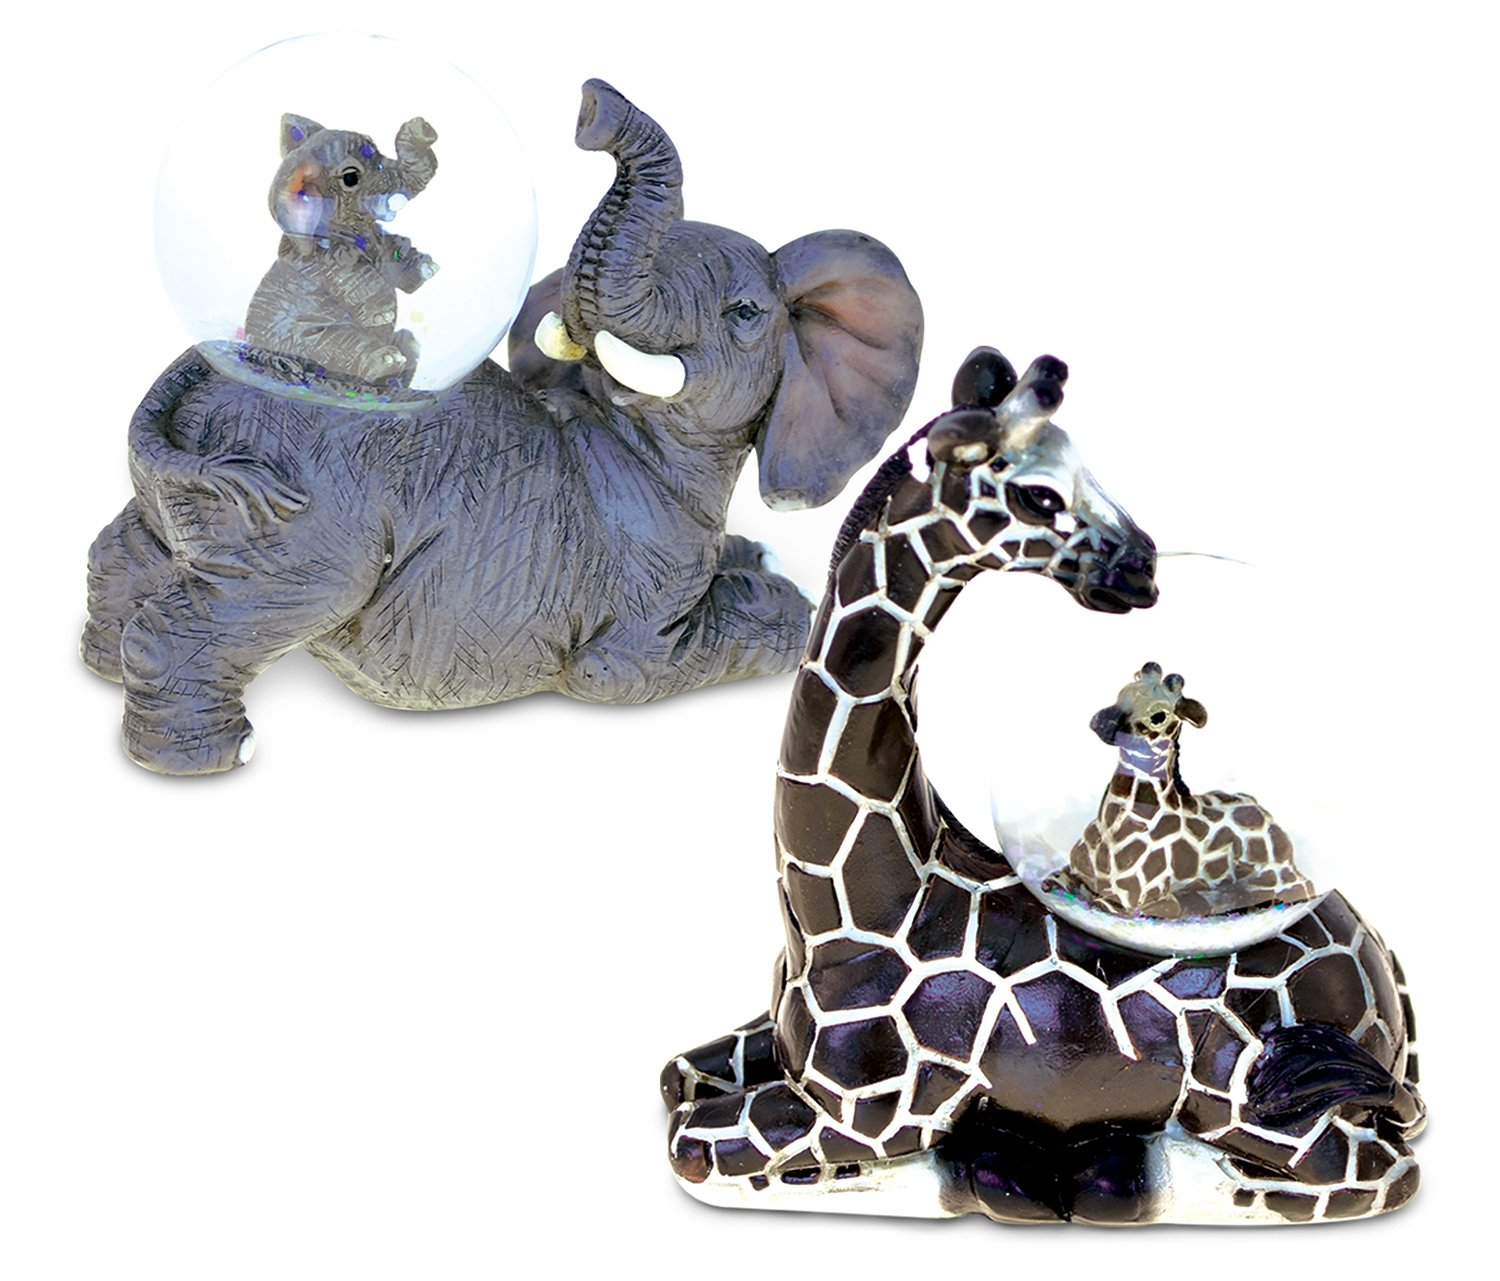 Puzzled Elephant and Giraffe Snowglobes (45MM) Handcrafted Vibrant Wild Life Decor - Animal Theme - Assorted Design, Set of 2 - Item #K9478-9479